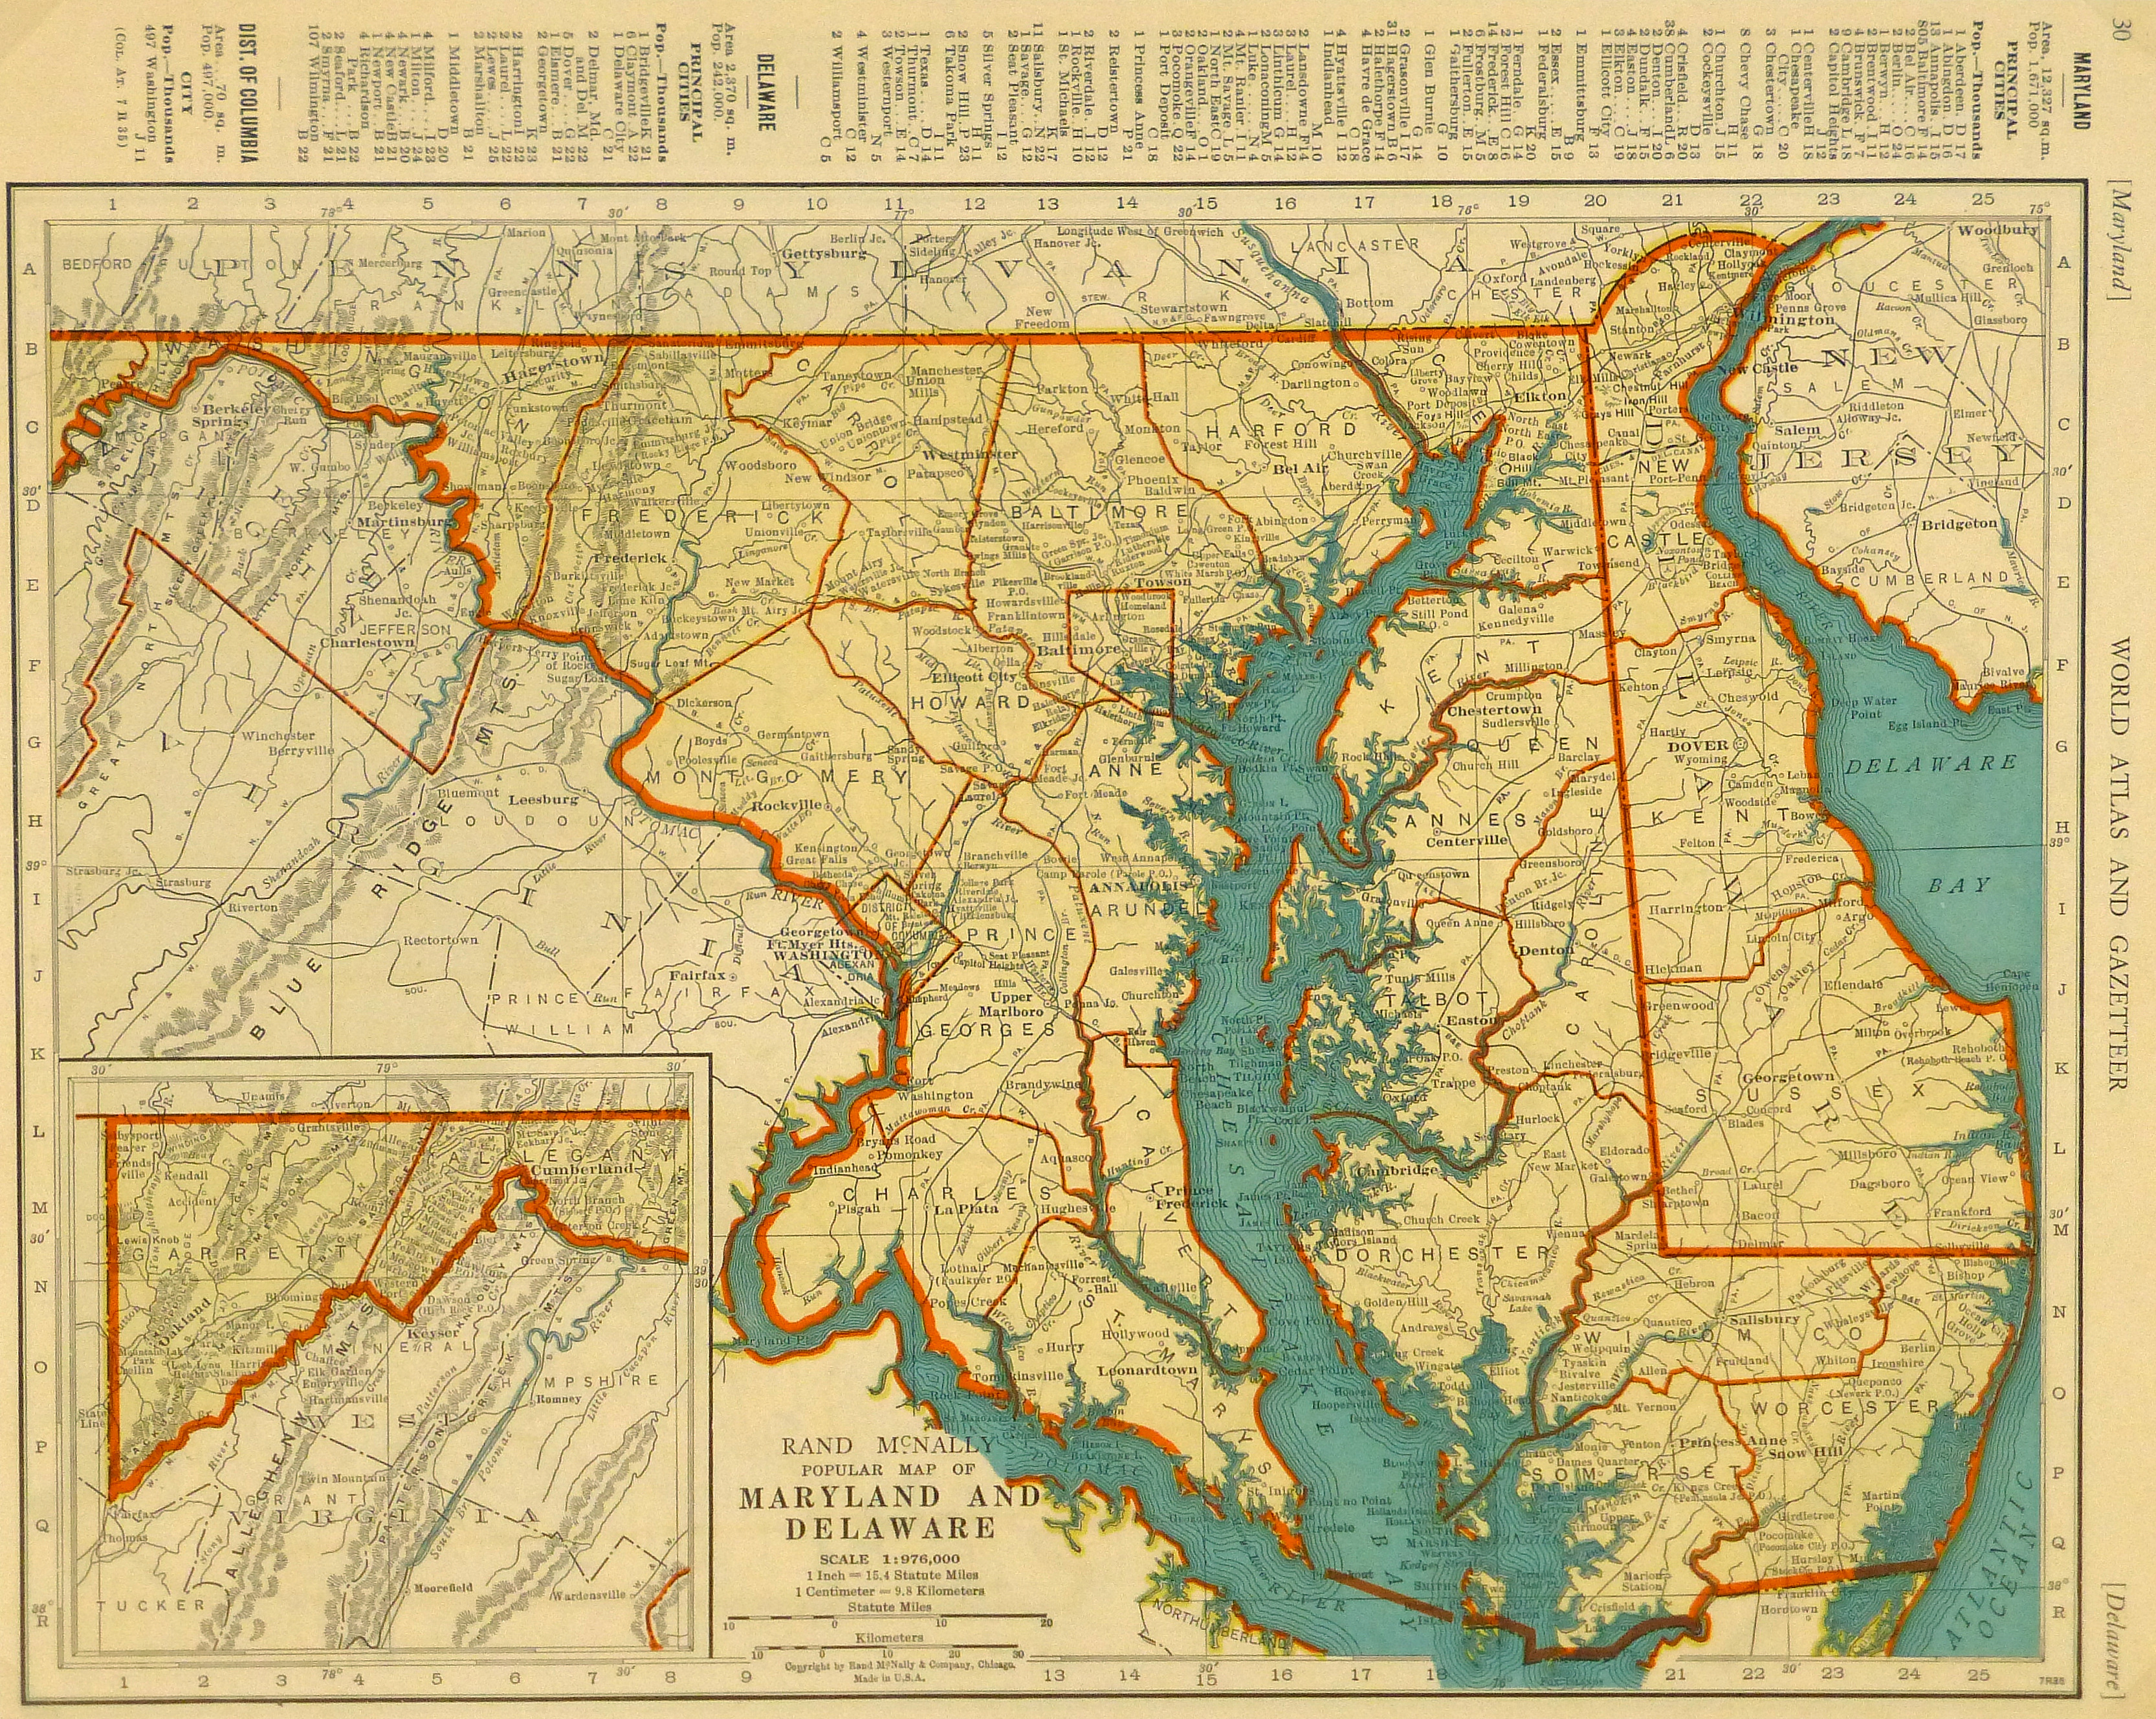 Map Of Delaware And Maryland Map of Maryland & Delaware, 1937   Original Art, Antique Maps & Prints Map Of Delaware And Maryland